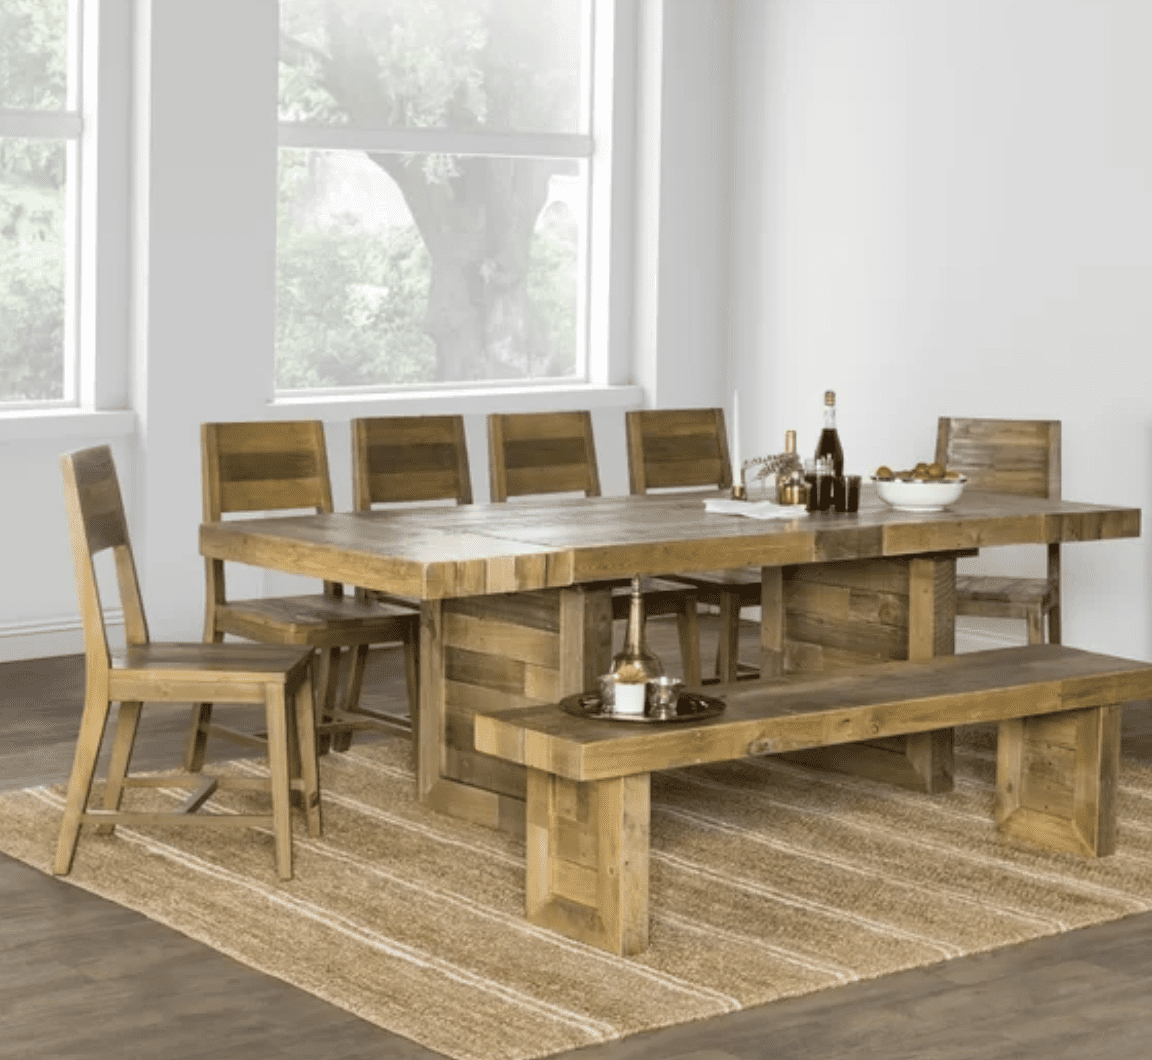 Rustic Brown Lorraine Extending Dining Tables intended for Popular The 9 Best Dining Room Tables Of 2020